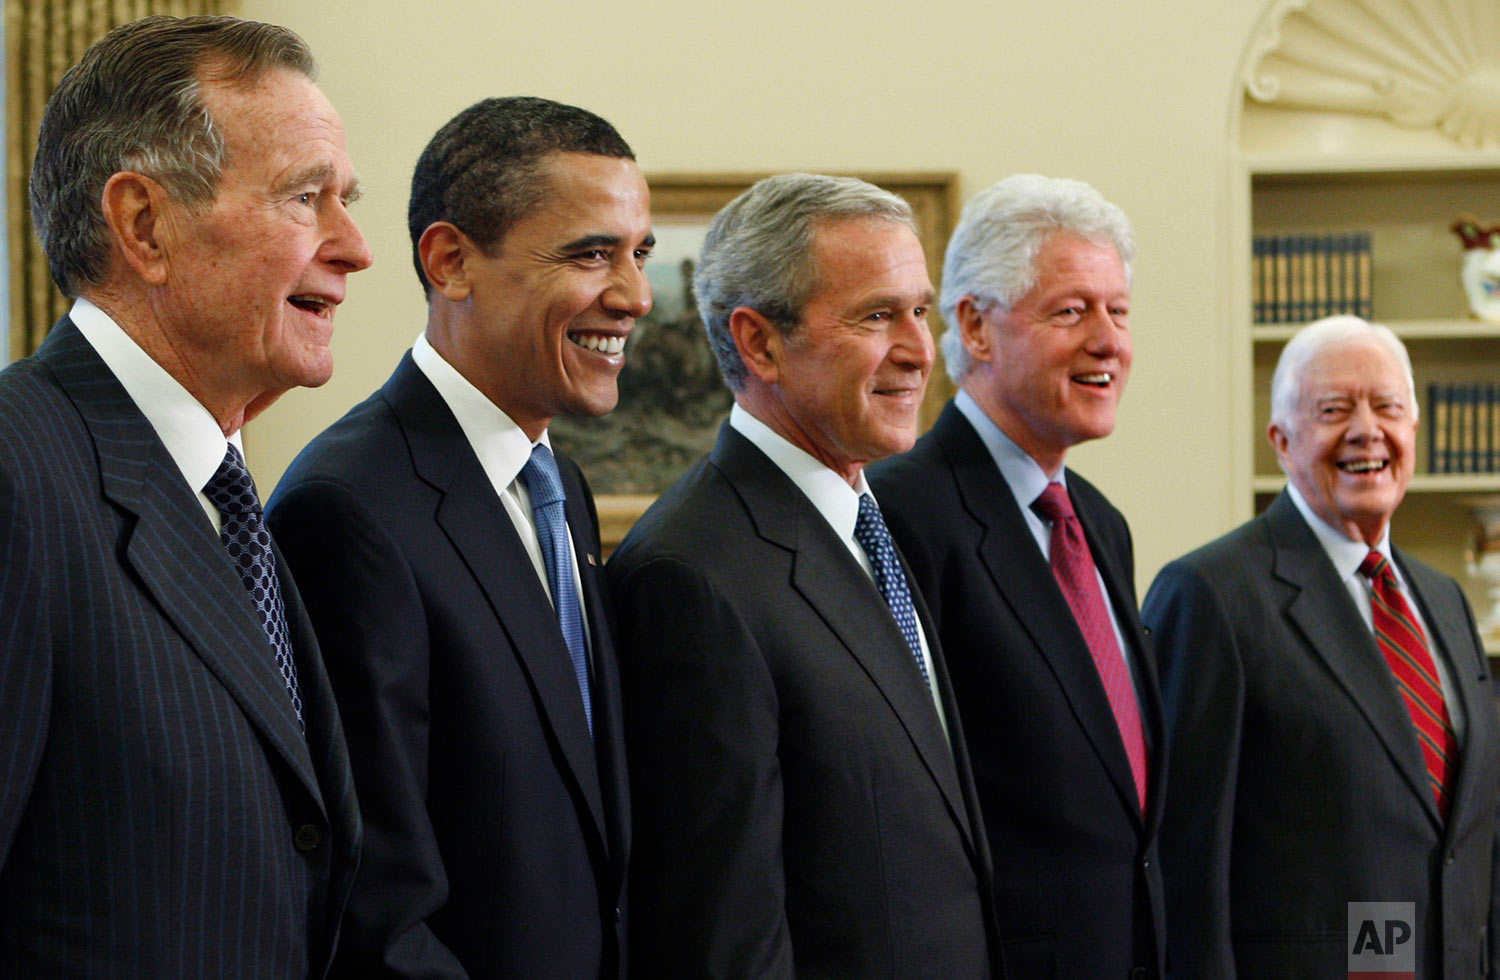 President George W. Bush, center, poses with President-elect Barack Obama, and former presidents, from left, George H.W. Bush, left, Bill Clinton and Jimmy Carter, right, Jan. 7, 2009, in the Oval Office of the White House in Washington. (AP Photo/J. Scott Applewhite, File)